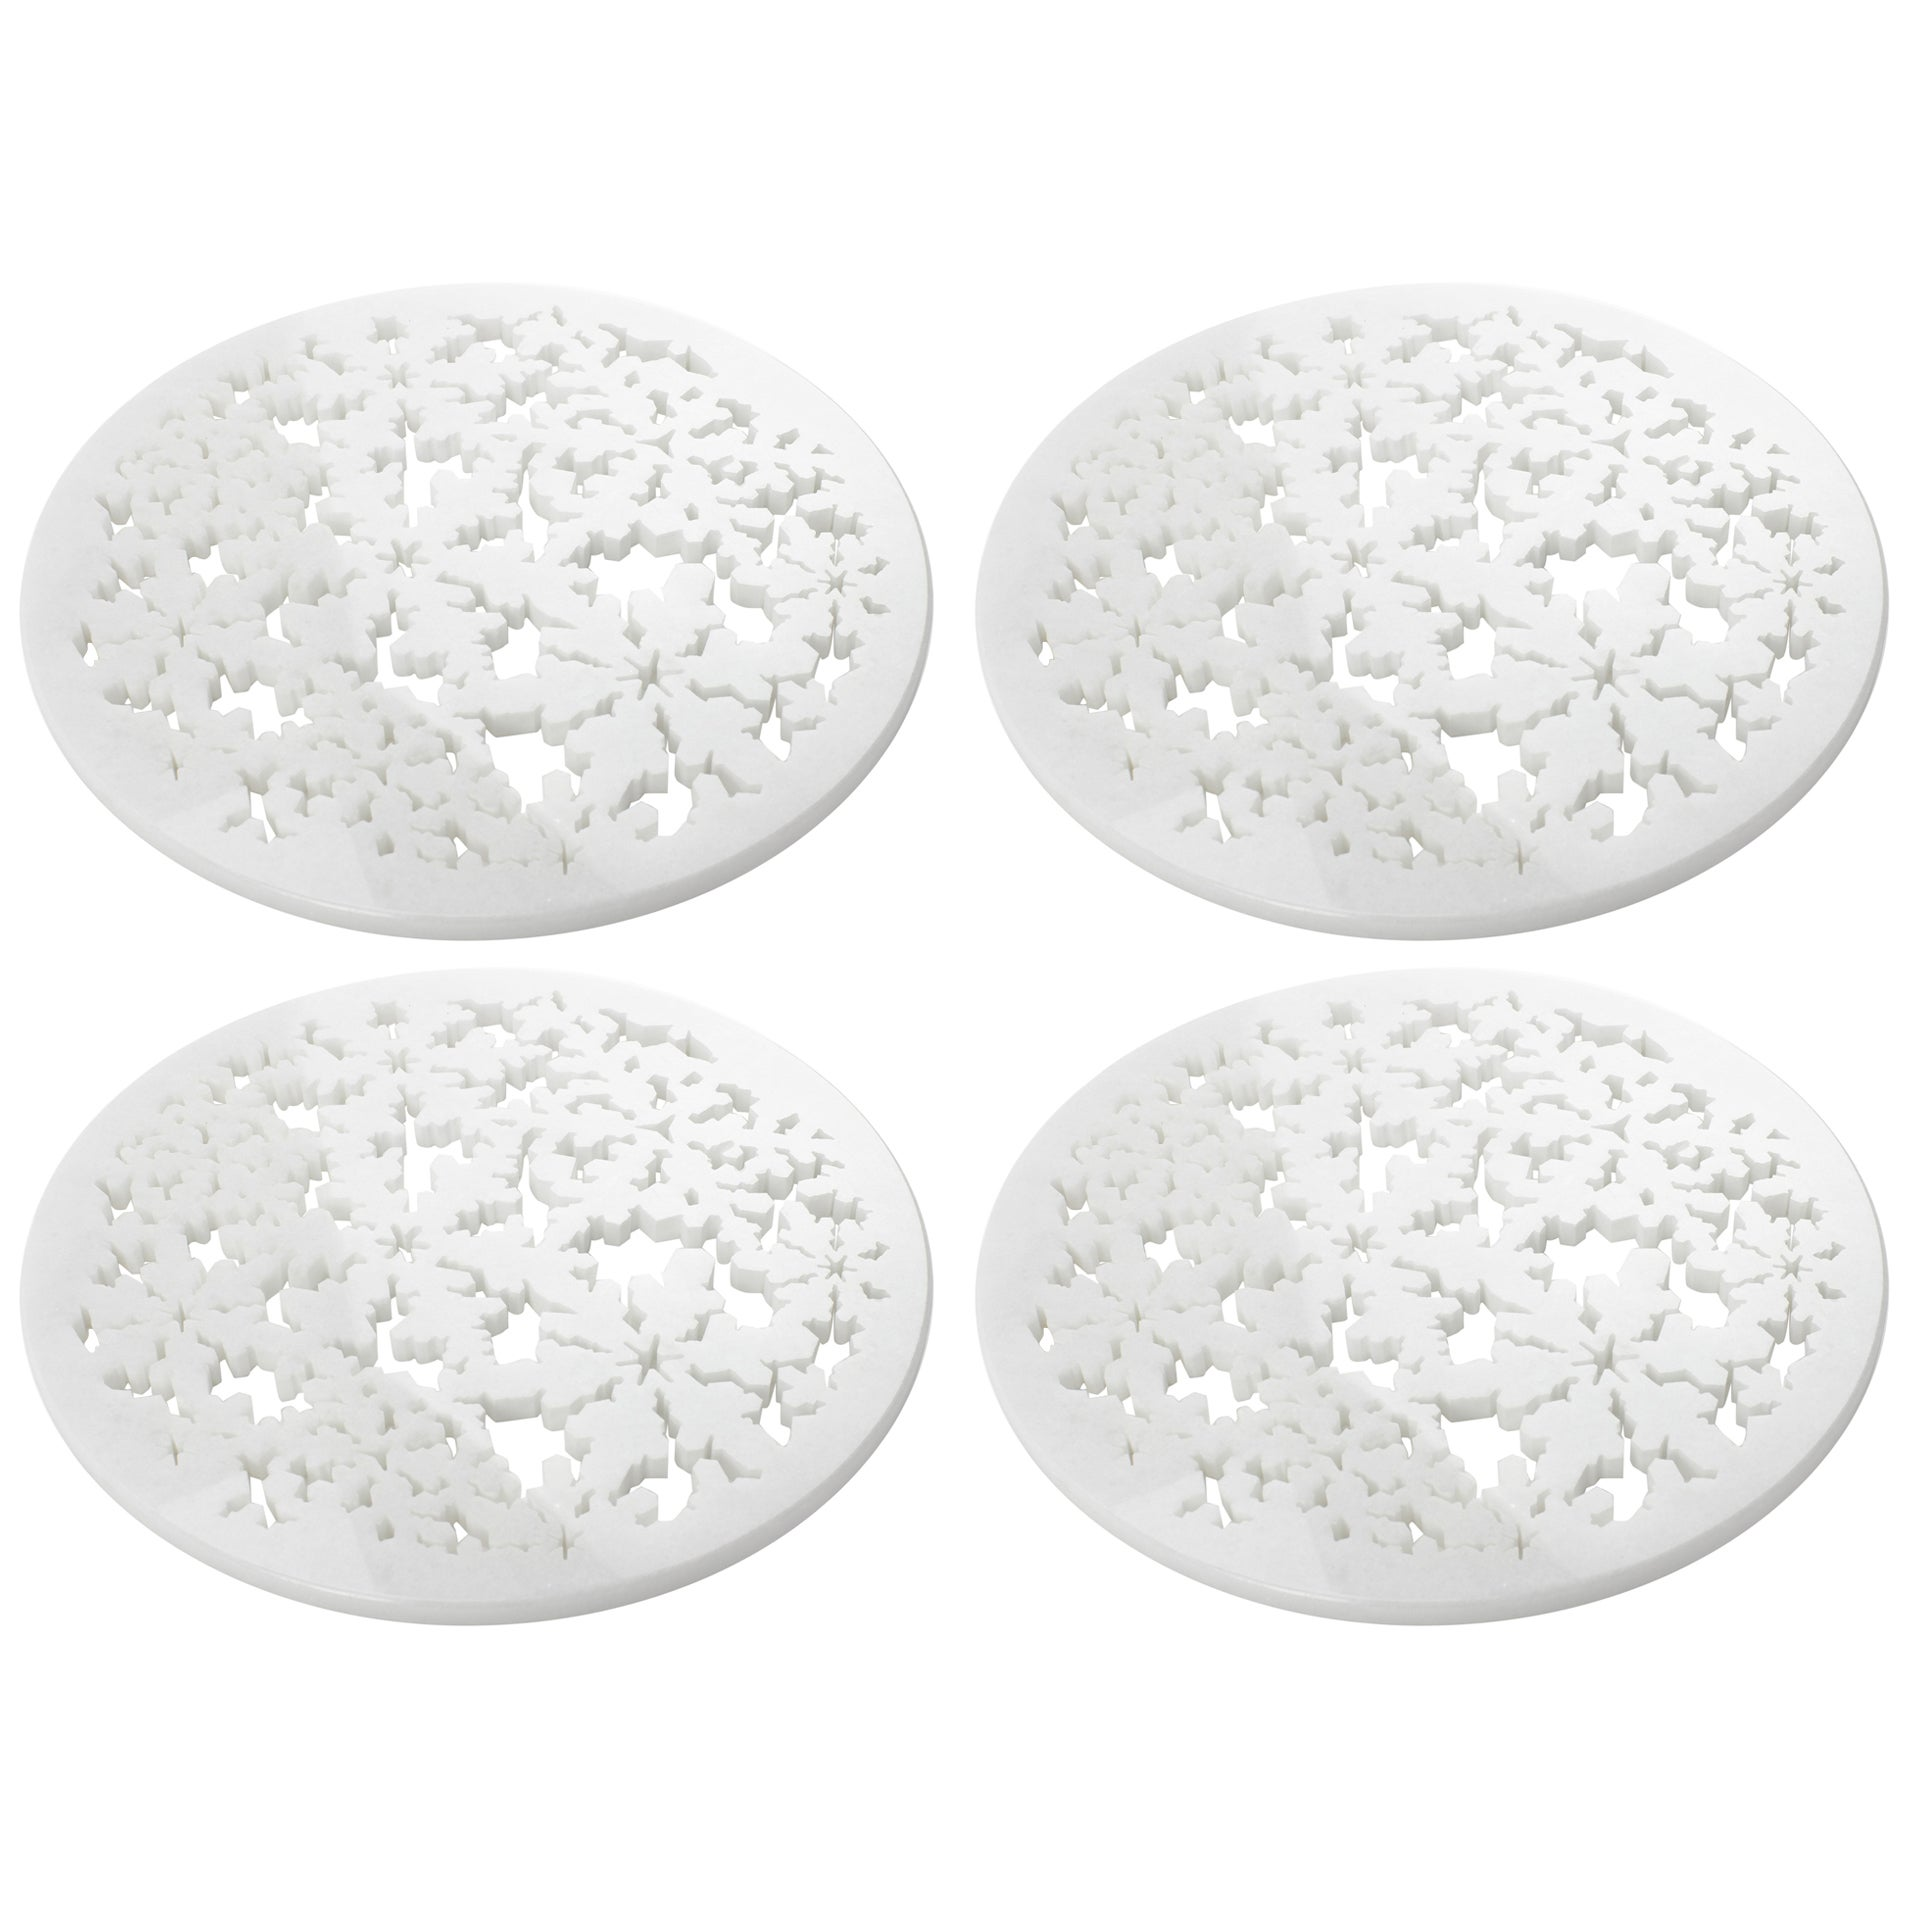 Set of 4 Charger Plate in Absolute Crystalline White Marble Christmas Decoration